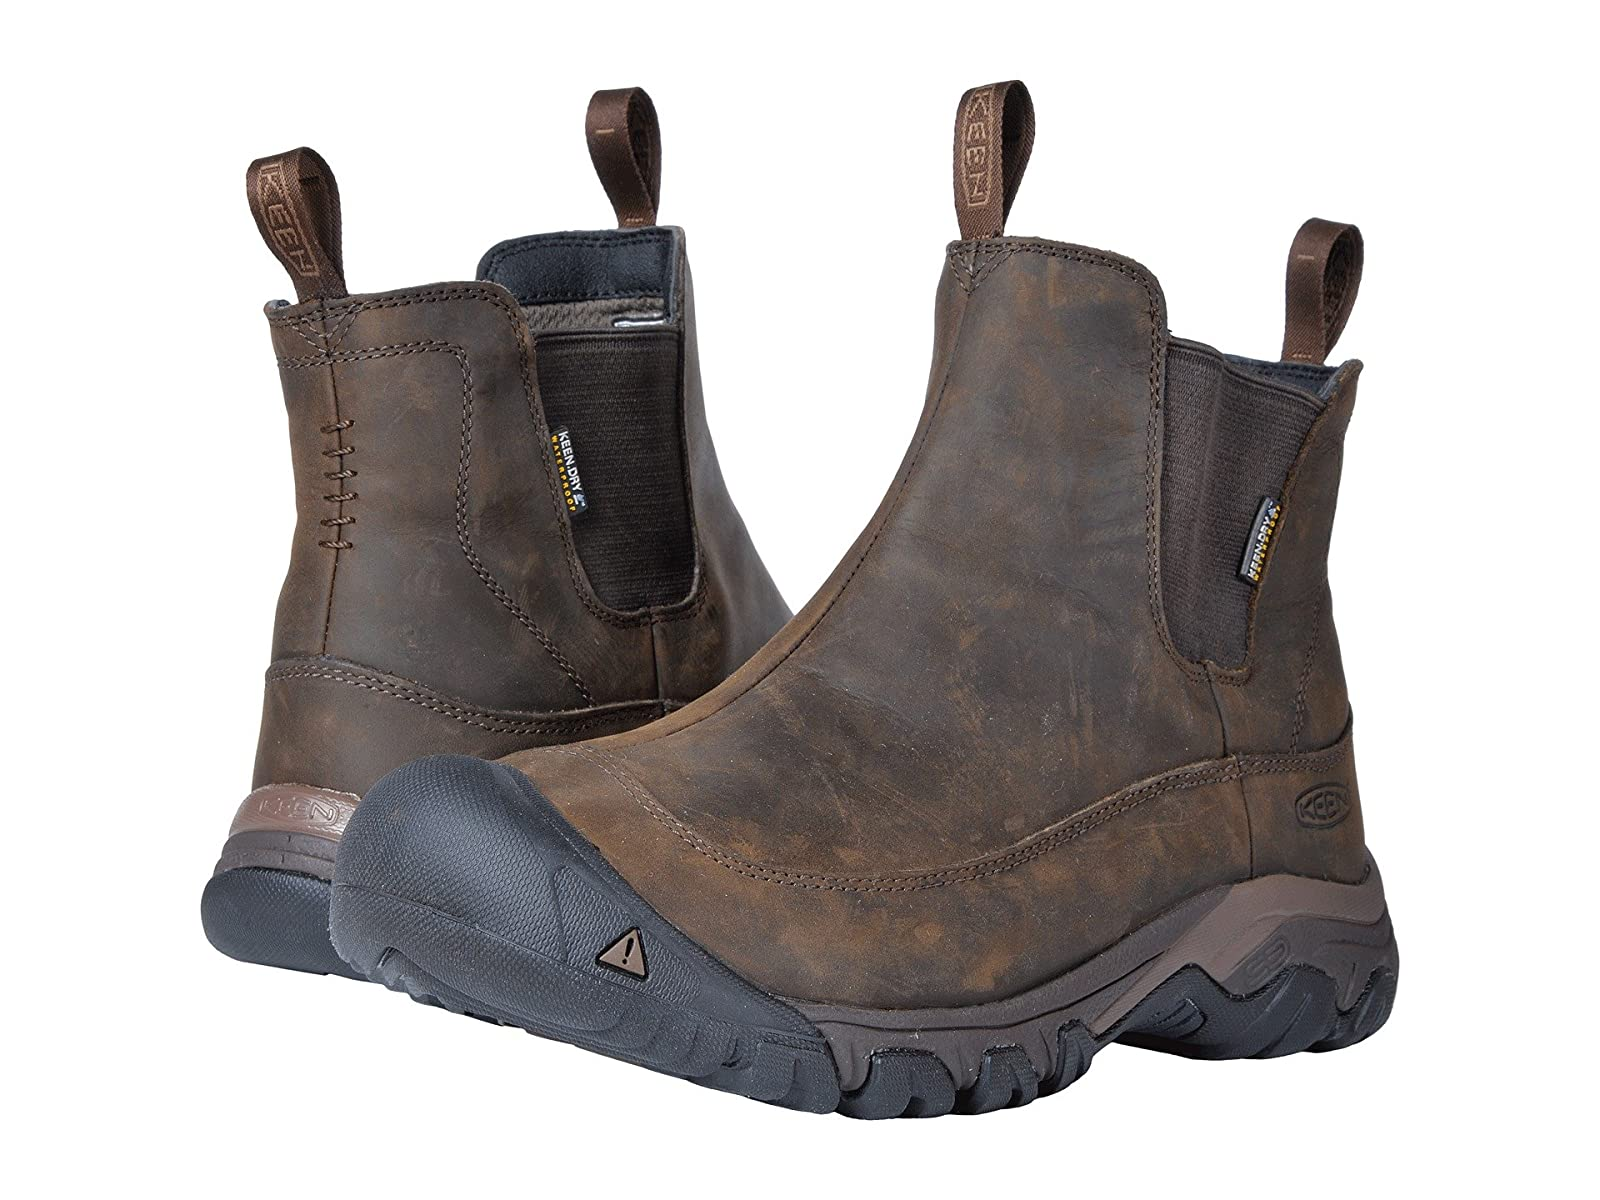 Keen Anchorage Boot III WaterproofAffordable and distinctive shoes